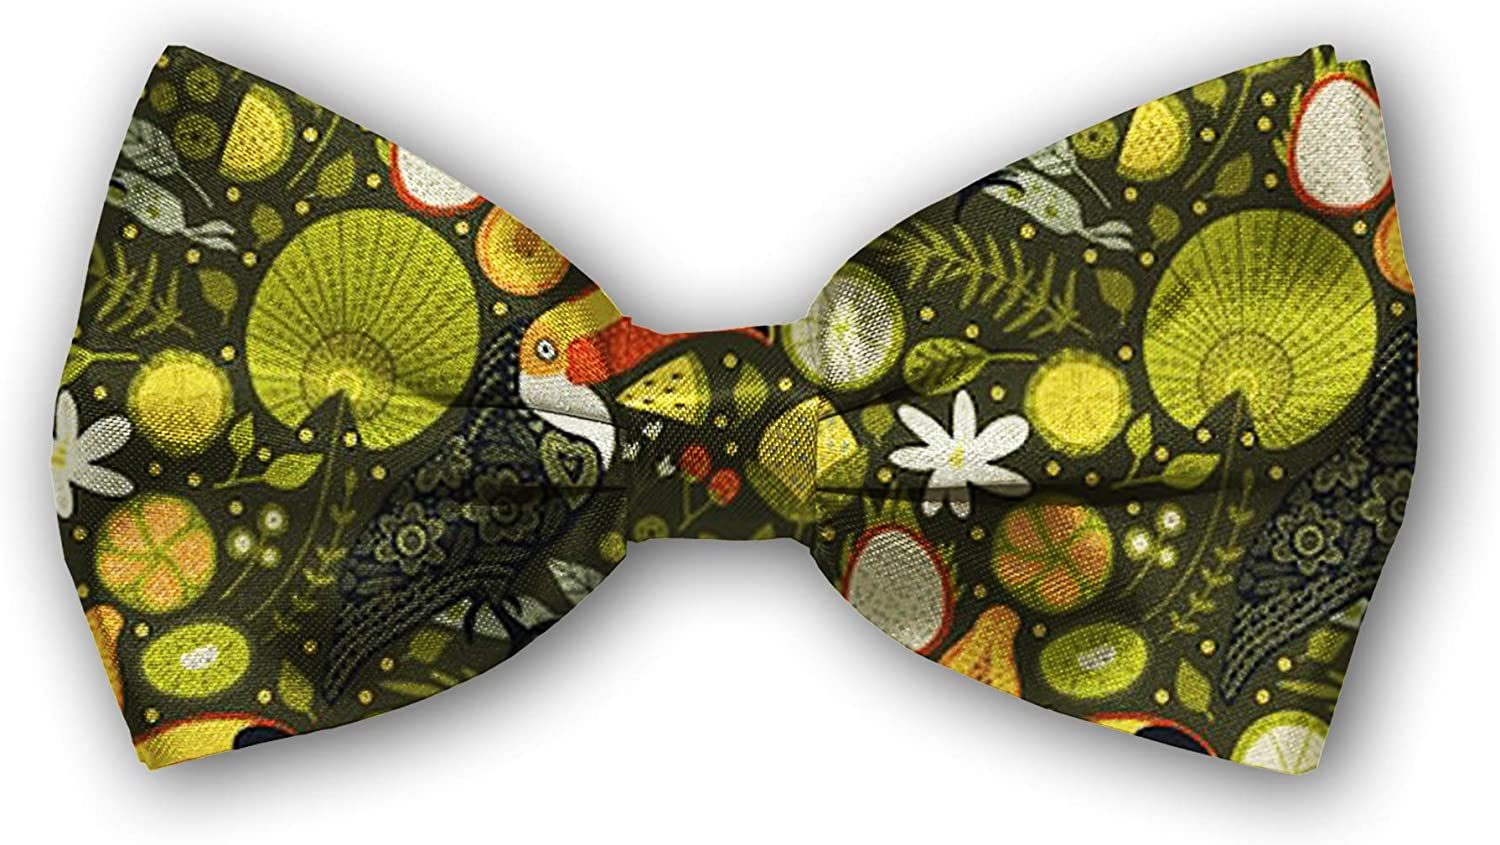 Bow Tie Tuxedo Butterfly Cotton Boys Mens Max 61% OFF for Adjustable Max 53% OFF Bowtie